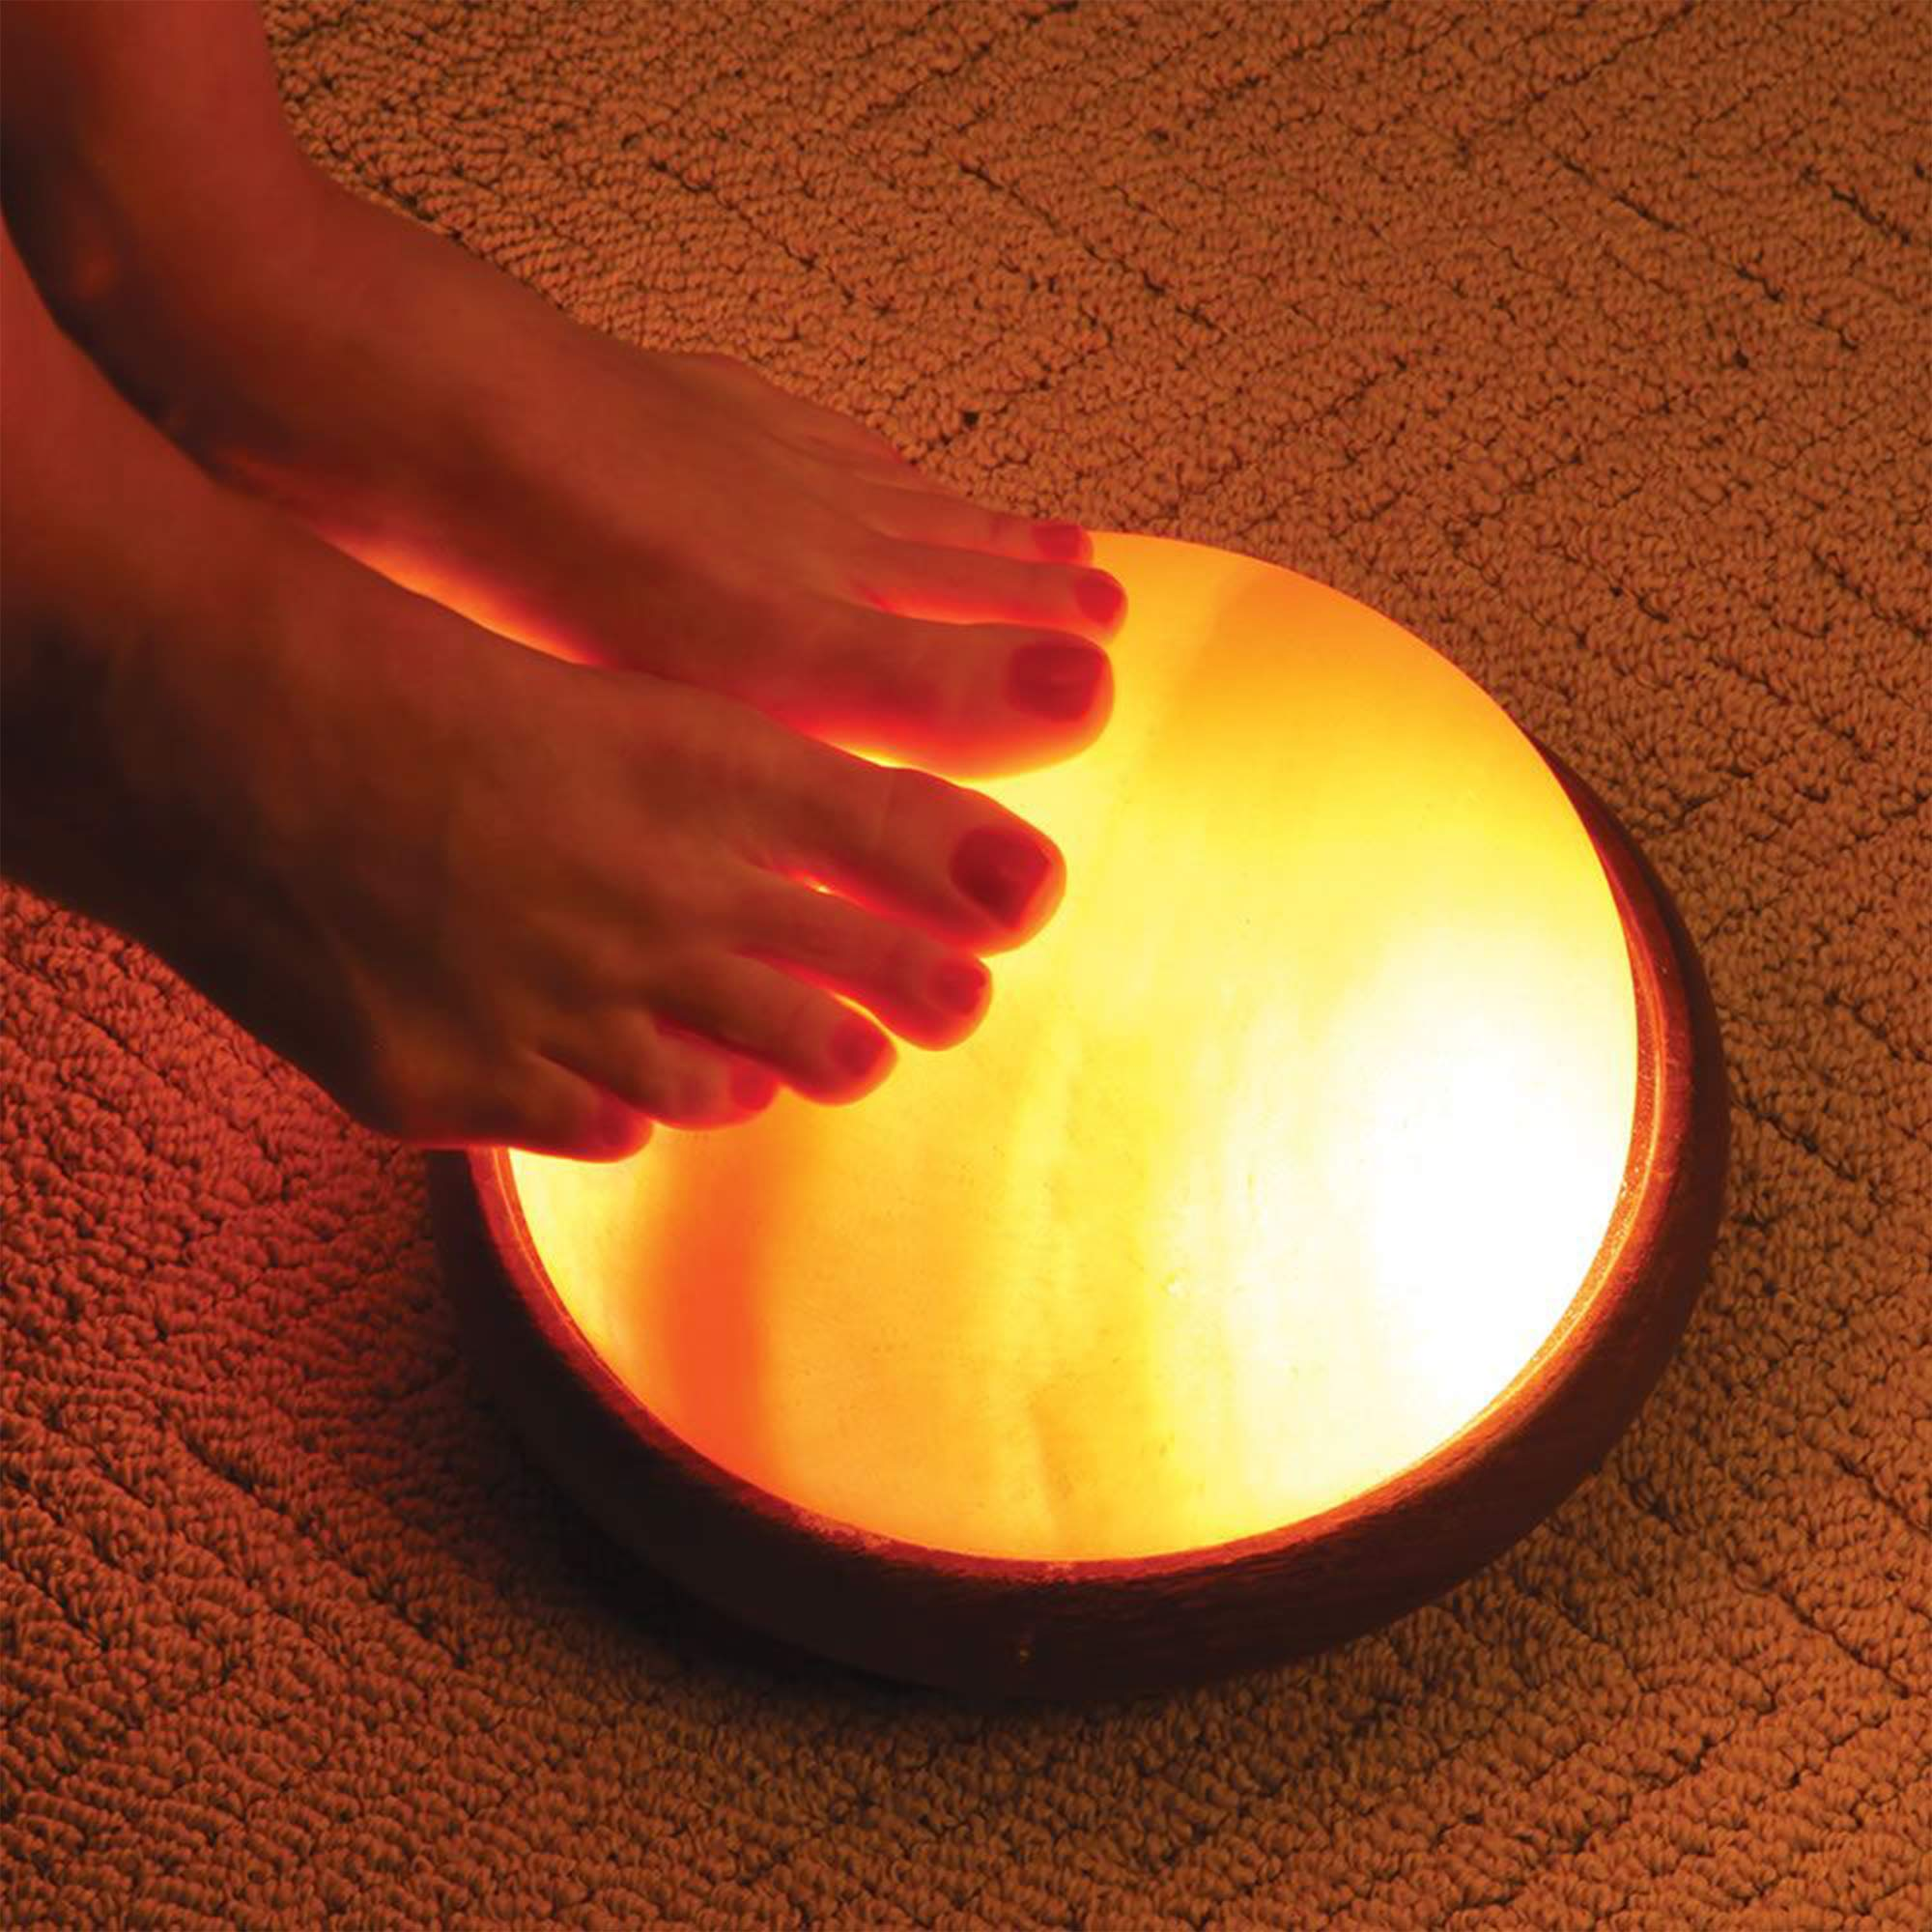 Himalayan Foot Detox Dome Salt Lamp | Remove Toxins & Relax Tired & Achy Feet | 8-11lbs by Himalayan Glow (Image #6)